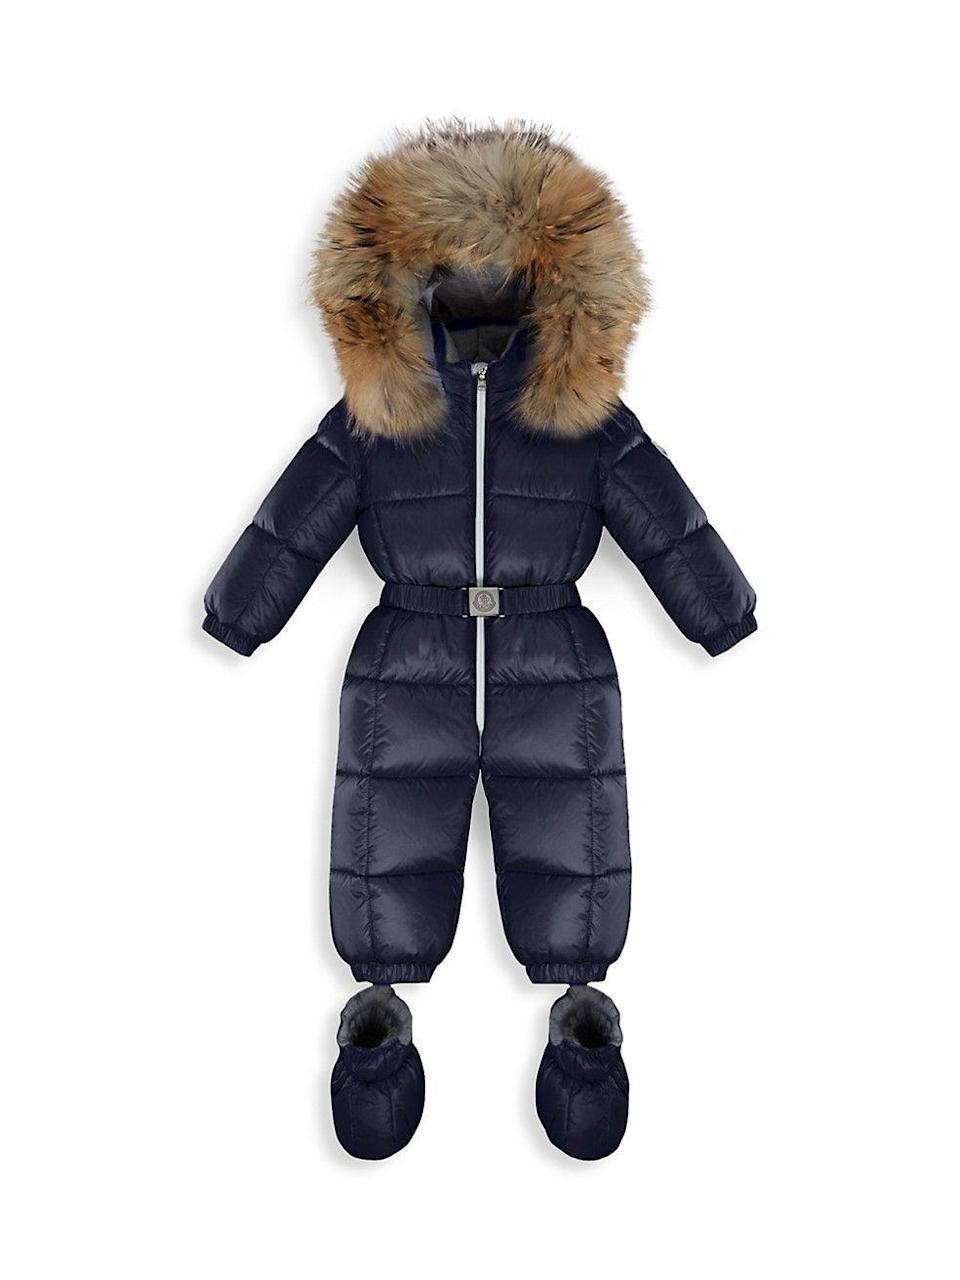 "<p><strong>Moncler</strong></p><p>shop.saksfifthavenue.com</p><p><strong>$770.00</strong></p><p><a href=""https://shop.saksfifthavenue.com/product/moncler-baby-s--amp--little-kid-s-fur-trim-down-paddded-snowsuit-0400012876042.html?site_refer=NPLA_GGL_Shopping"" rel=""nofollow noopener"" target=""_blank"" data-ylk=""slk:Shop Now"" class=""link rapid-noclick-resp"">Shop Now</a></p><p>This Moncler snowsuit is essential for cold weather. The little one will want to play in the snow while staying stylish and most importantly warm. </p>"